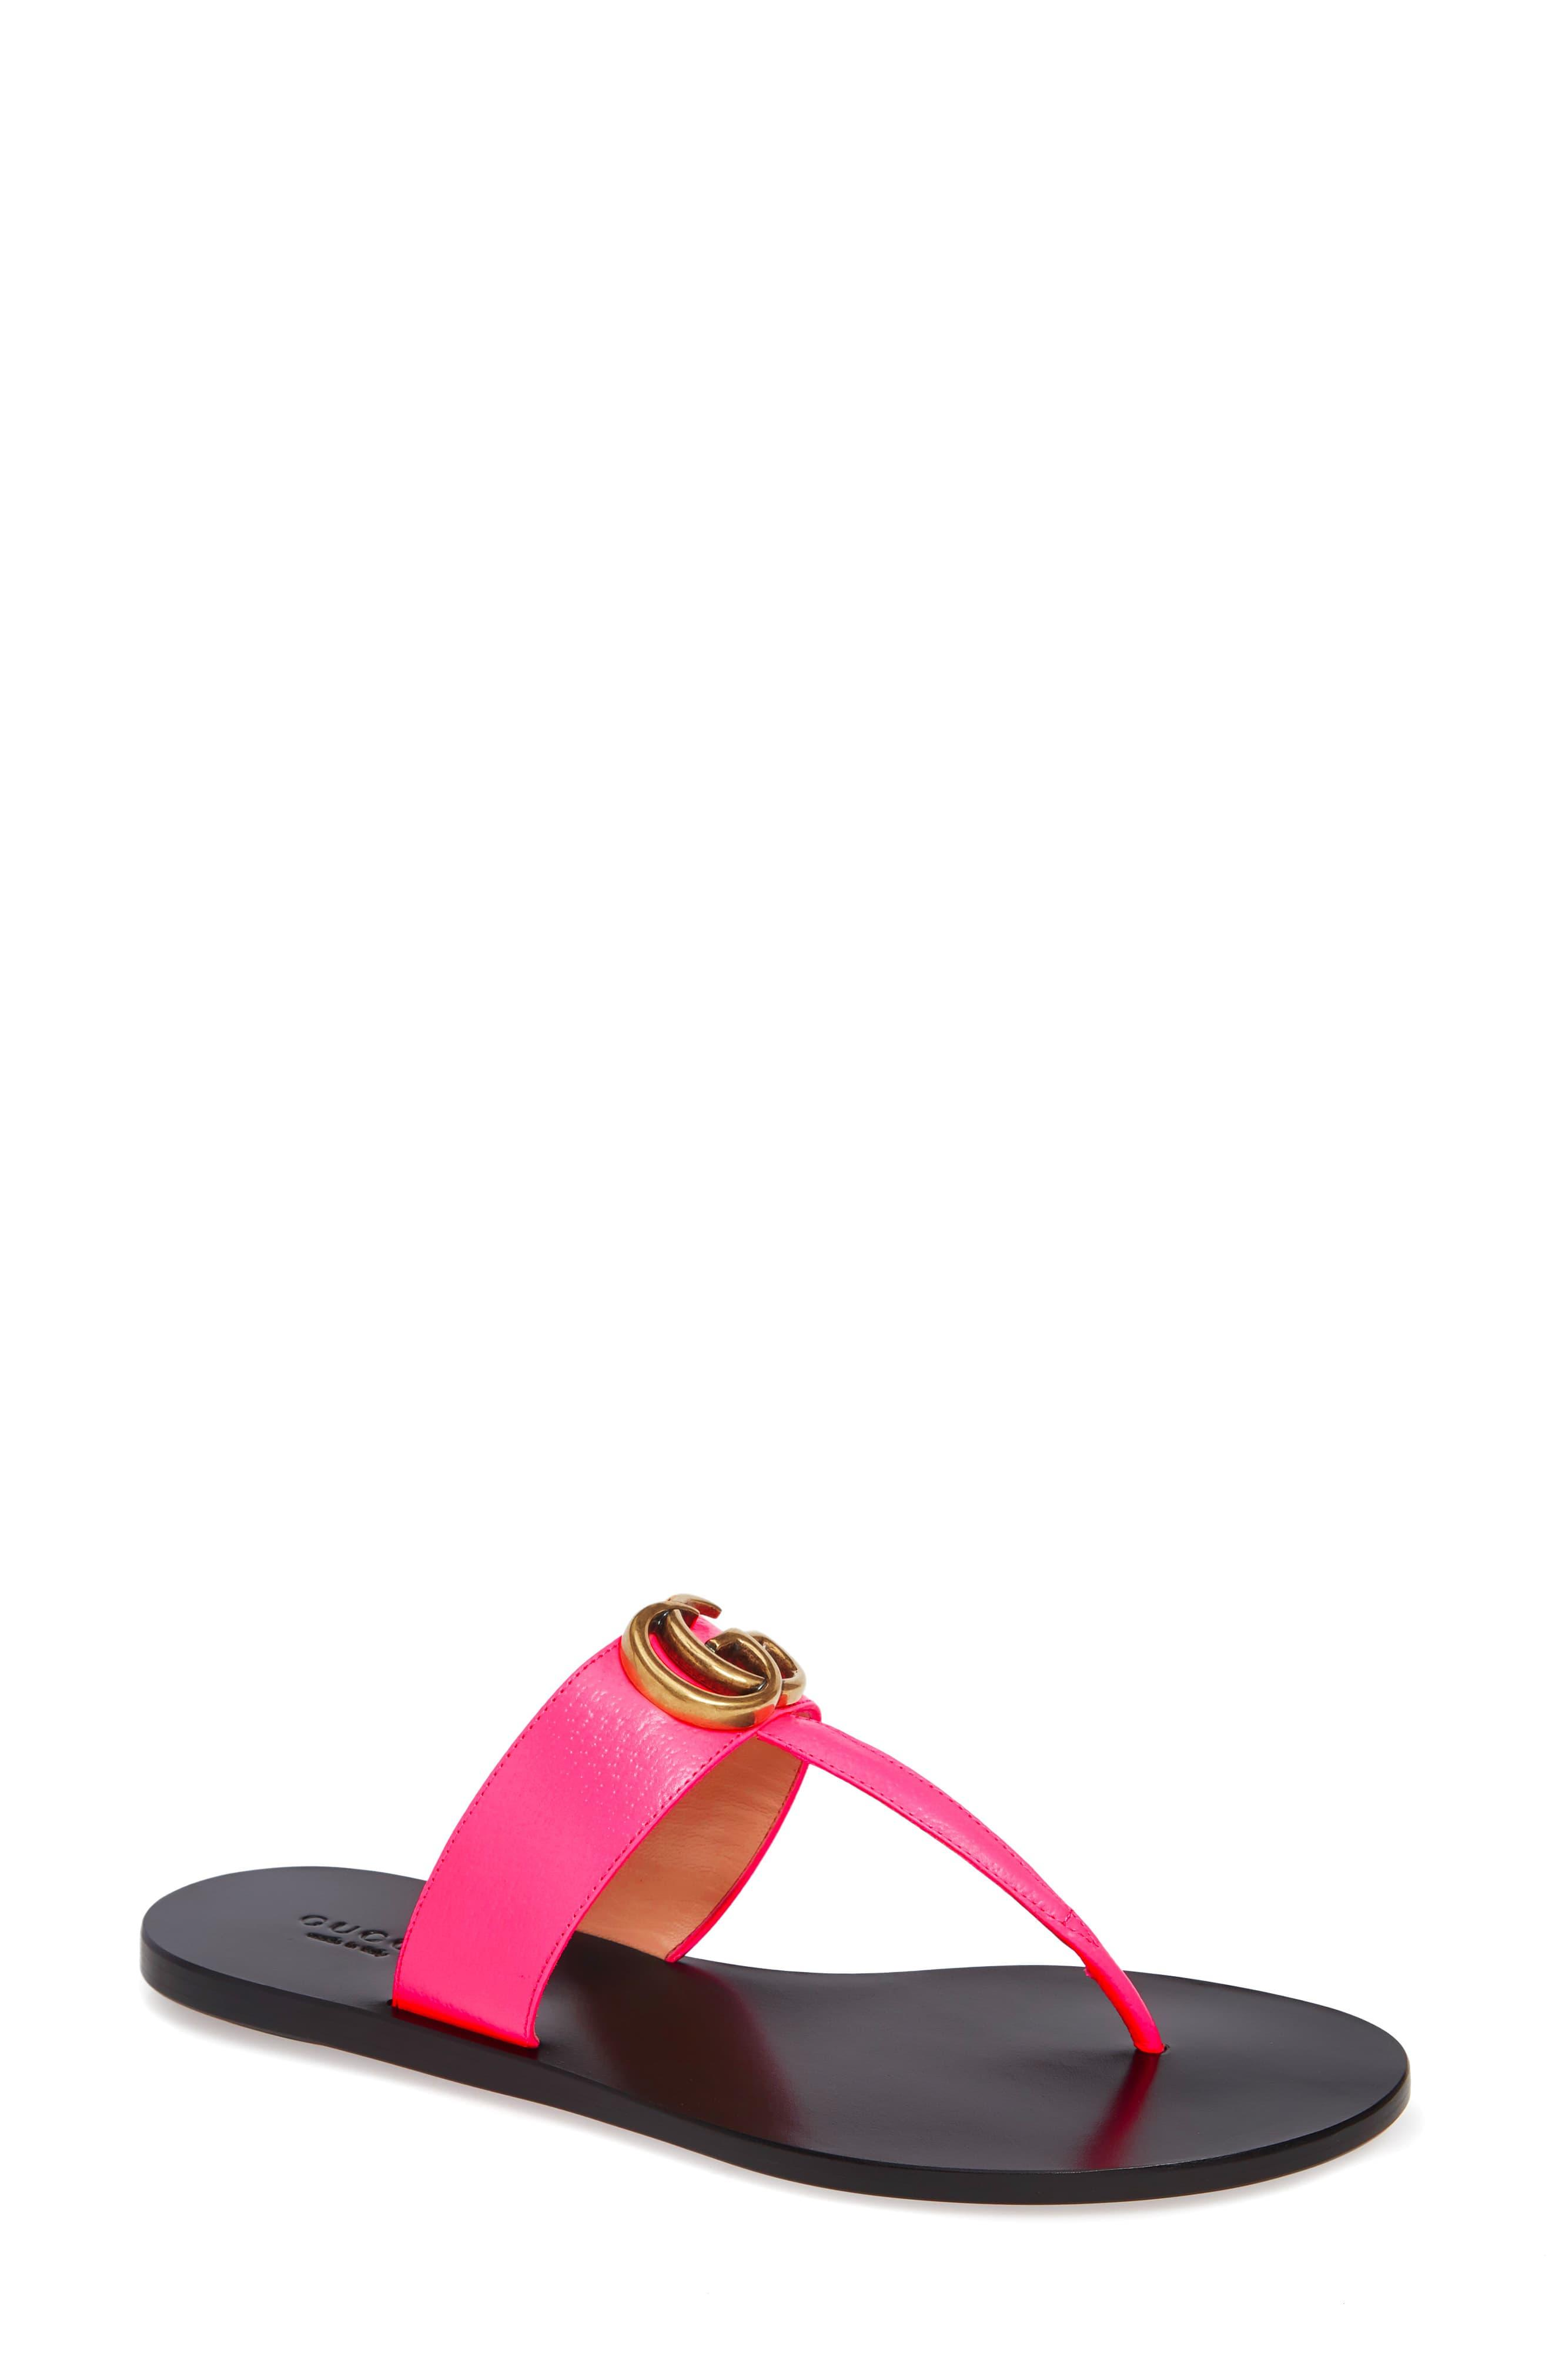 281ef593b ... Gucci Pink Leather Thong Sandal With Double G. Visit Nordstrom. Tap to  visit site